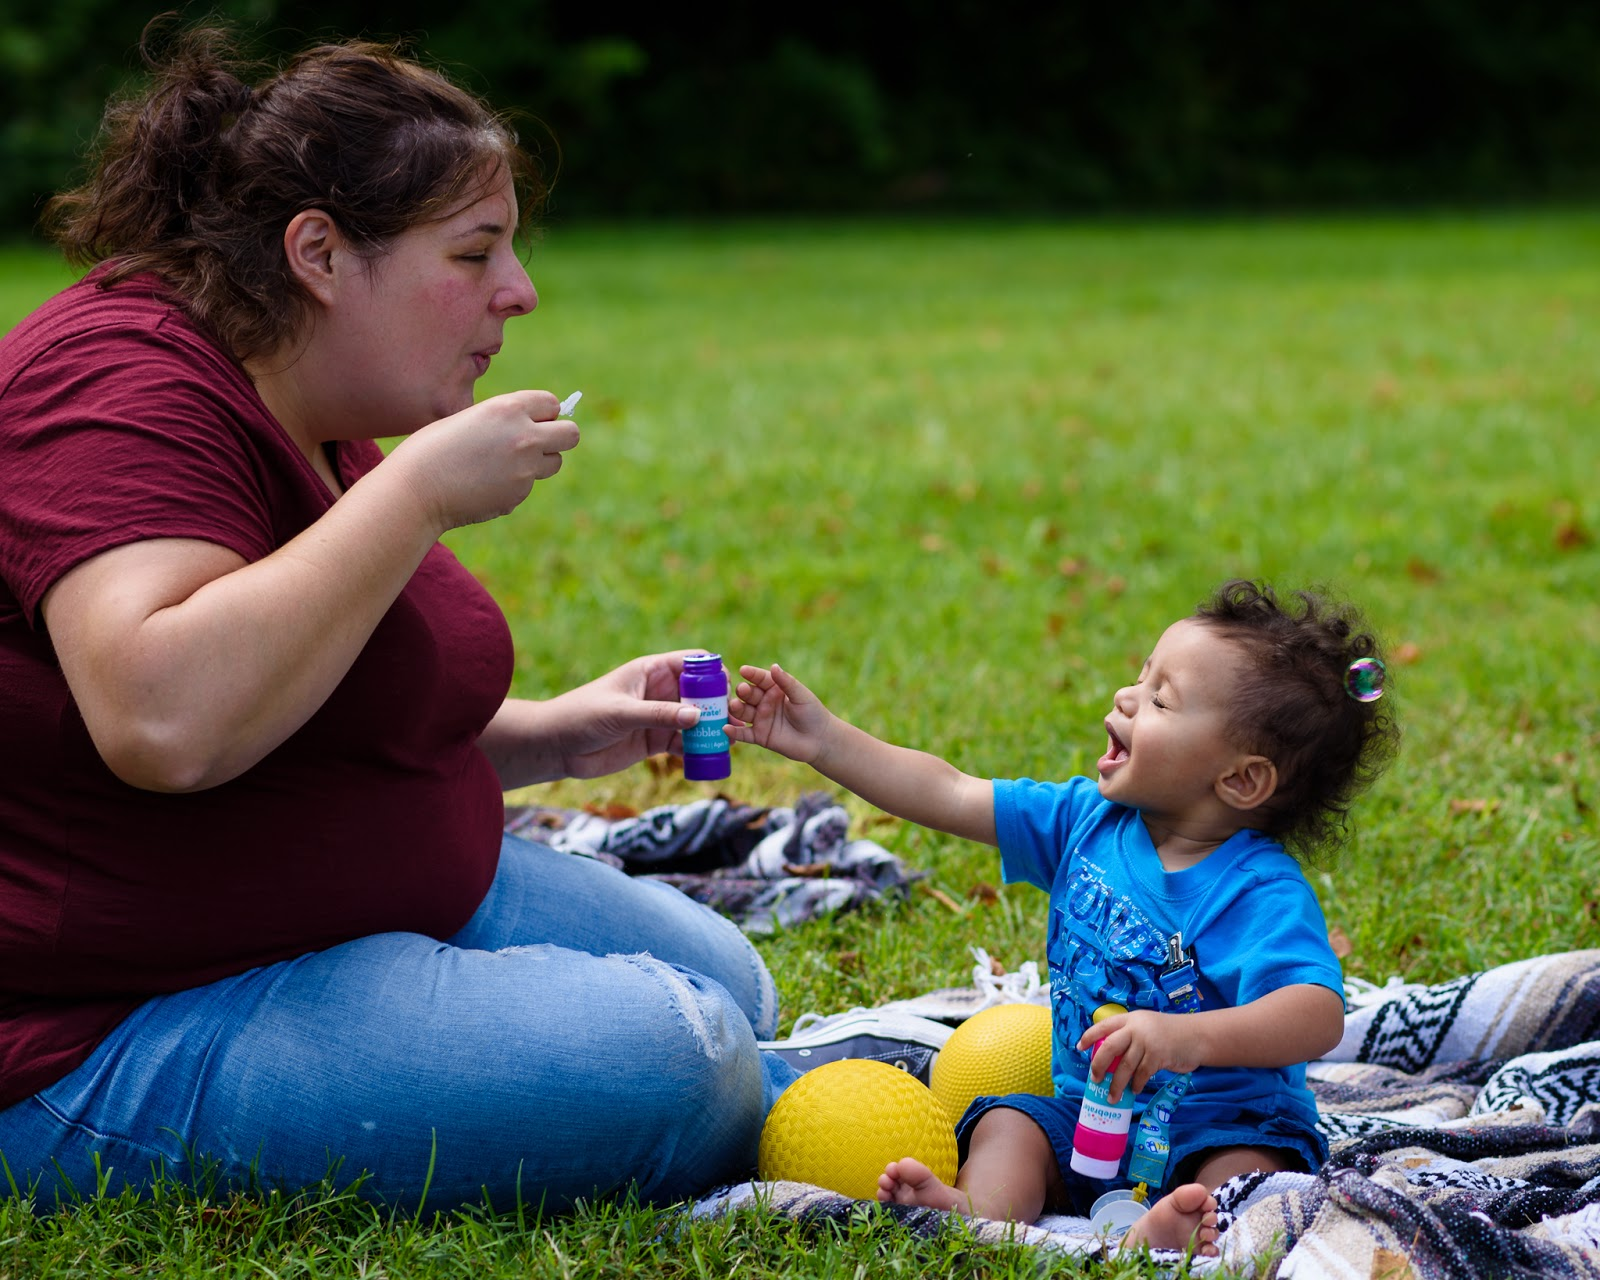 Mom and baby blowing bubbles at Together Vivo! Park Playalong © Diana Sherblom Photography